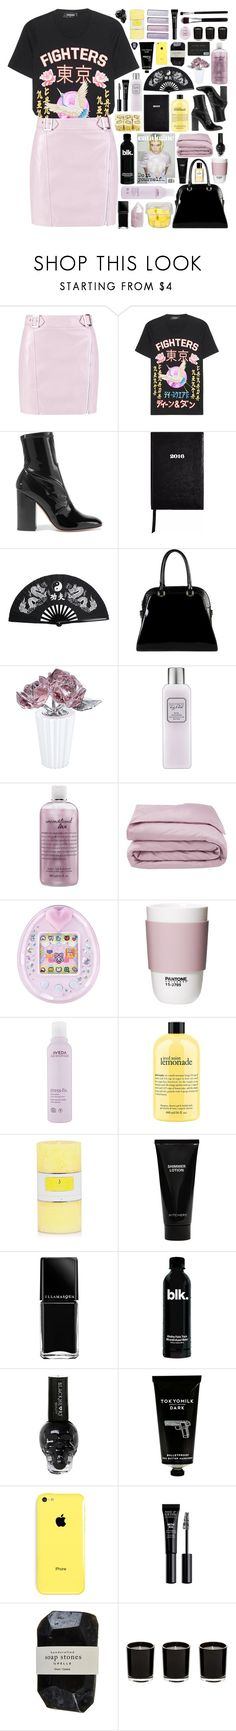 """""""19:28"""" by svga-kookie ❤ liked on Polyvore featuring Boohoo, Dsquared2, Valentino, Sloane Stationery, Diophy, Swarovski, Laura Mercier, philosophy, Frette and ROOM COPENHAGEN"""